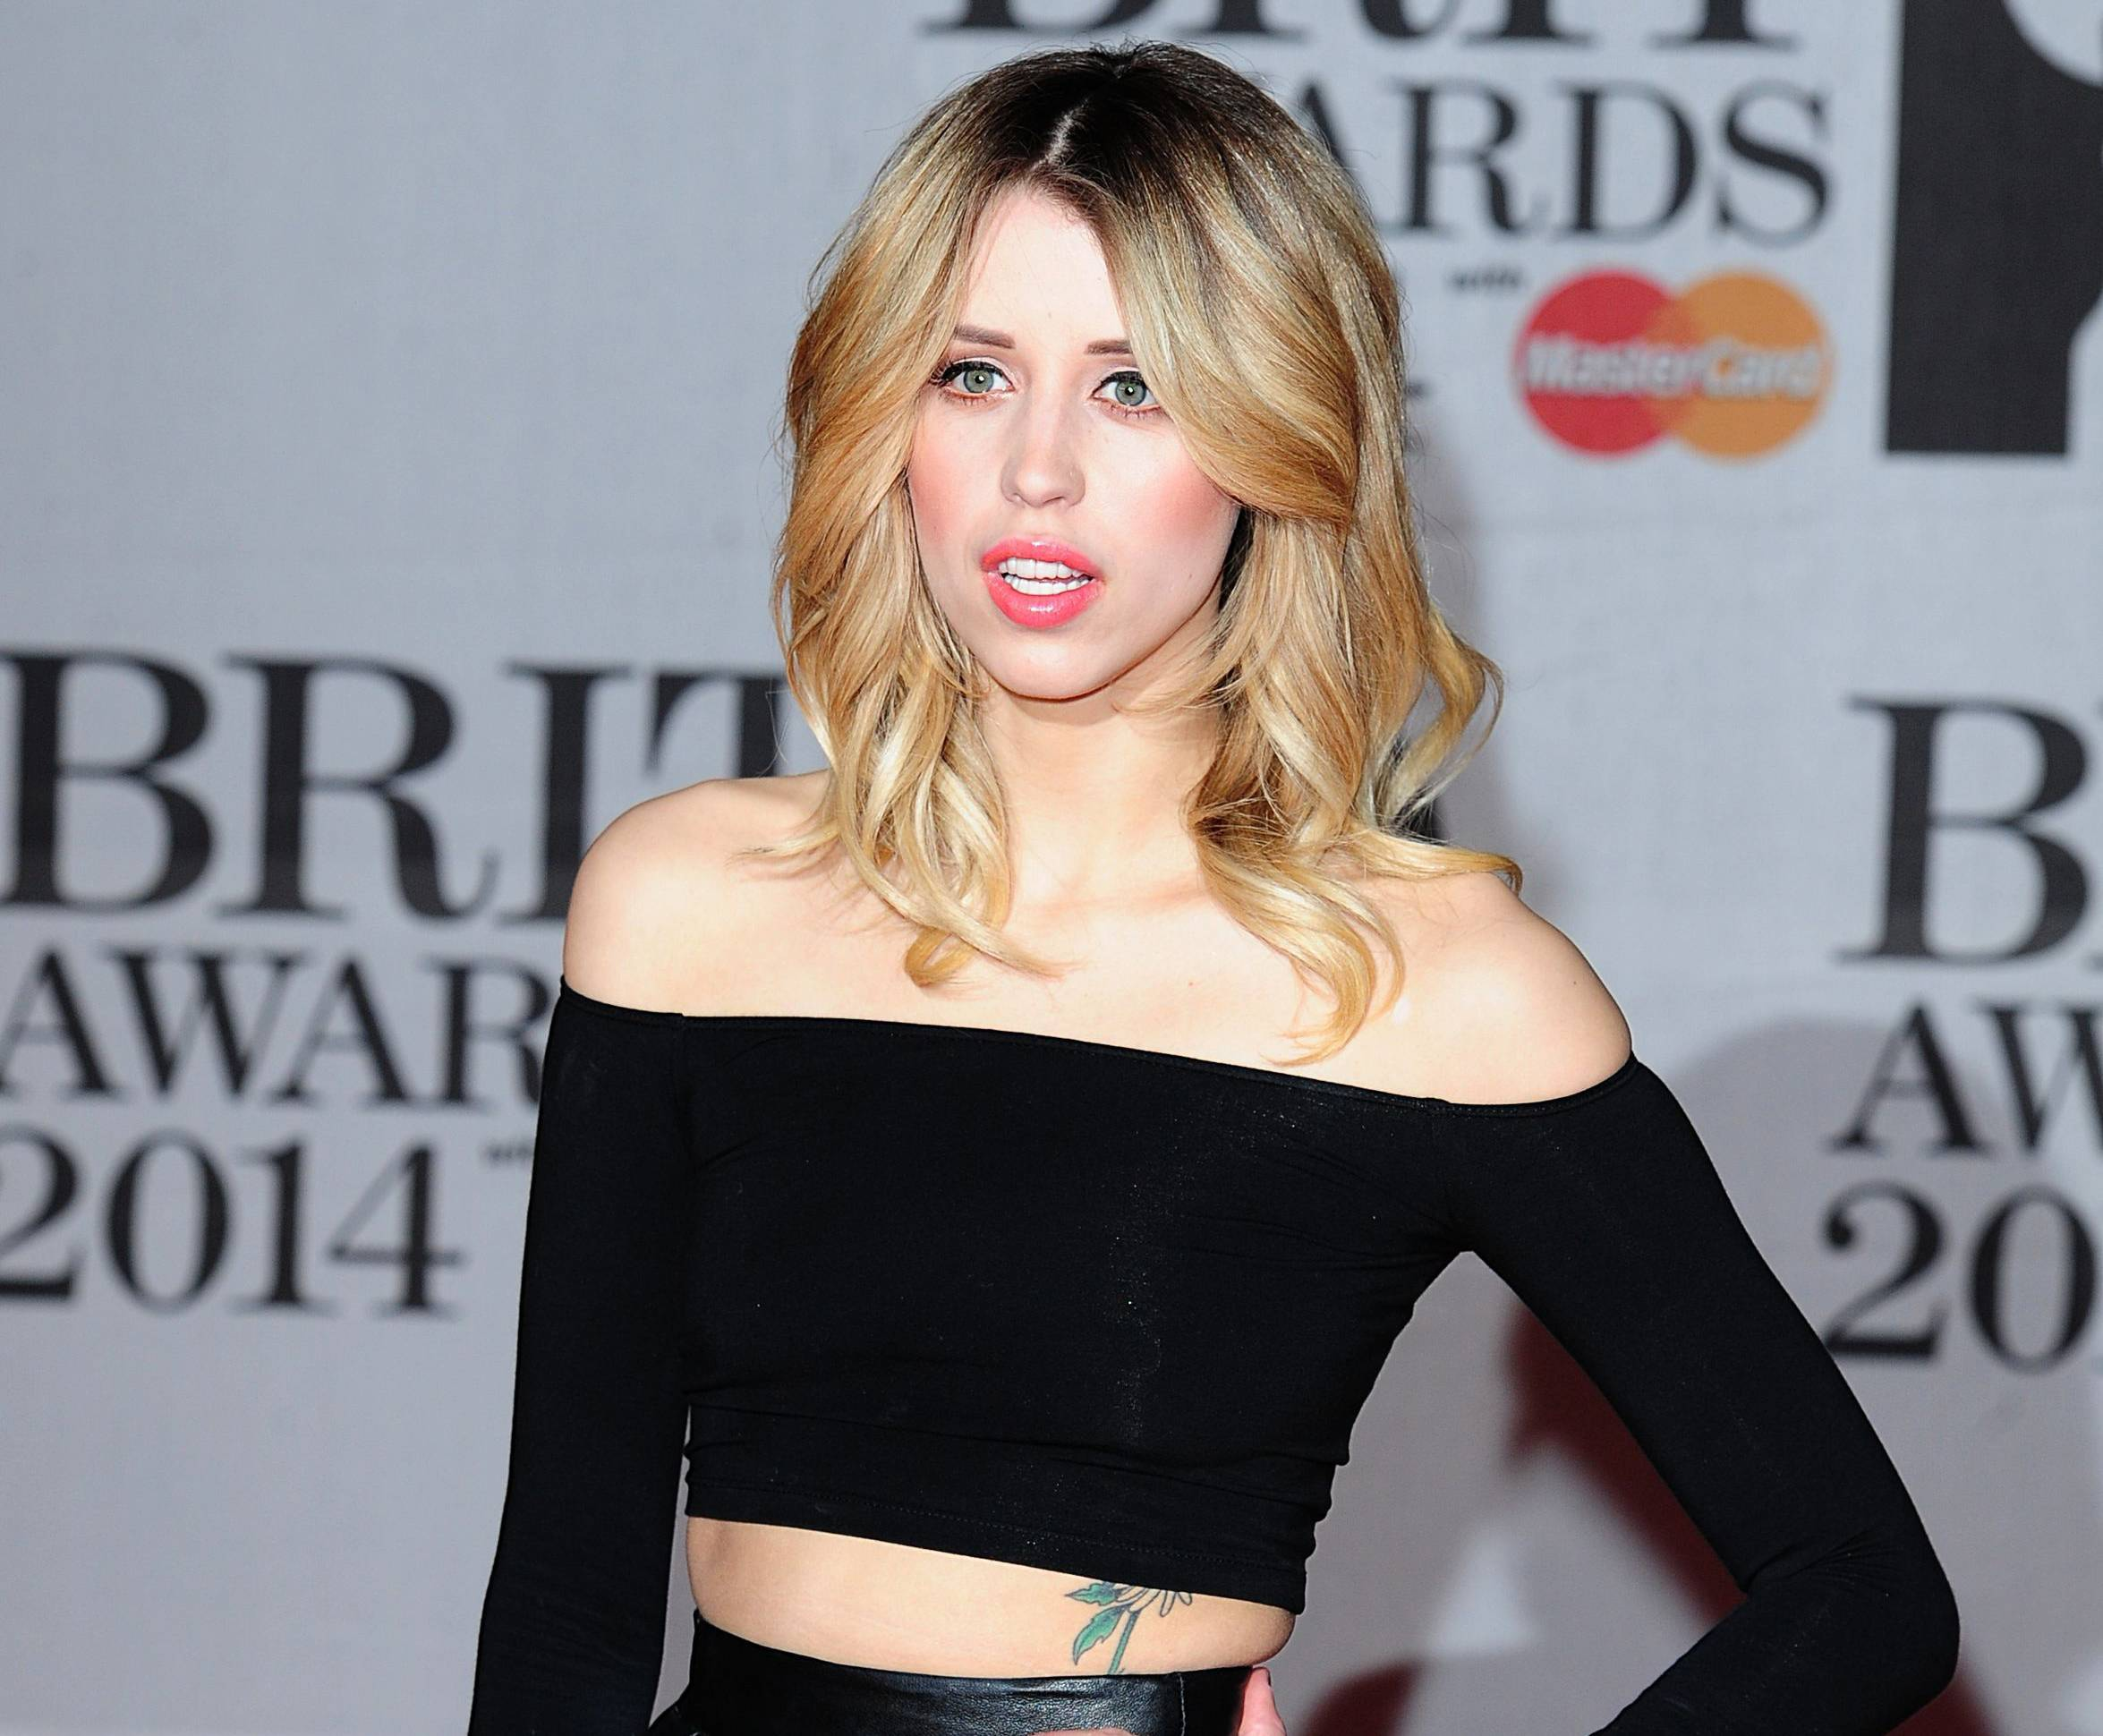 A senior British police officer says heroin is likely to have played a role in the death of Peaches Geldof last month.